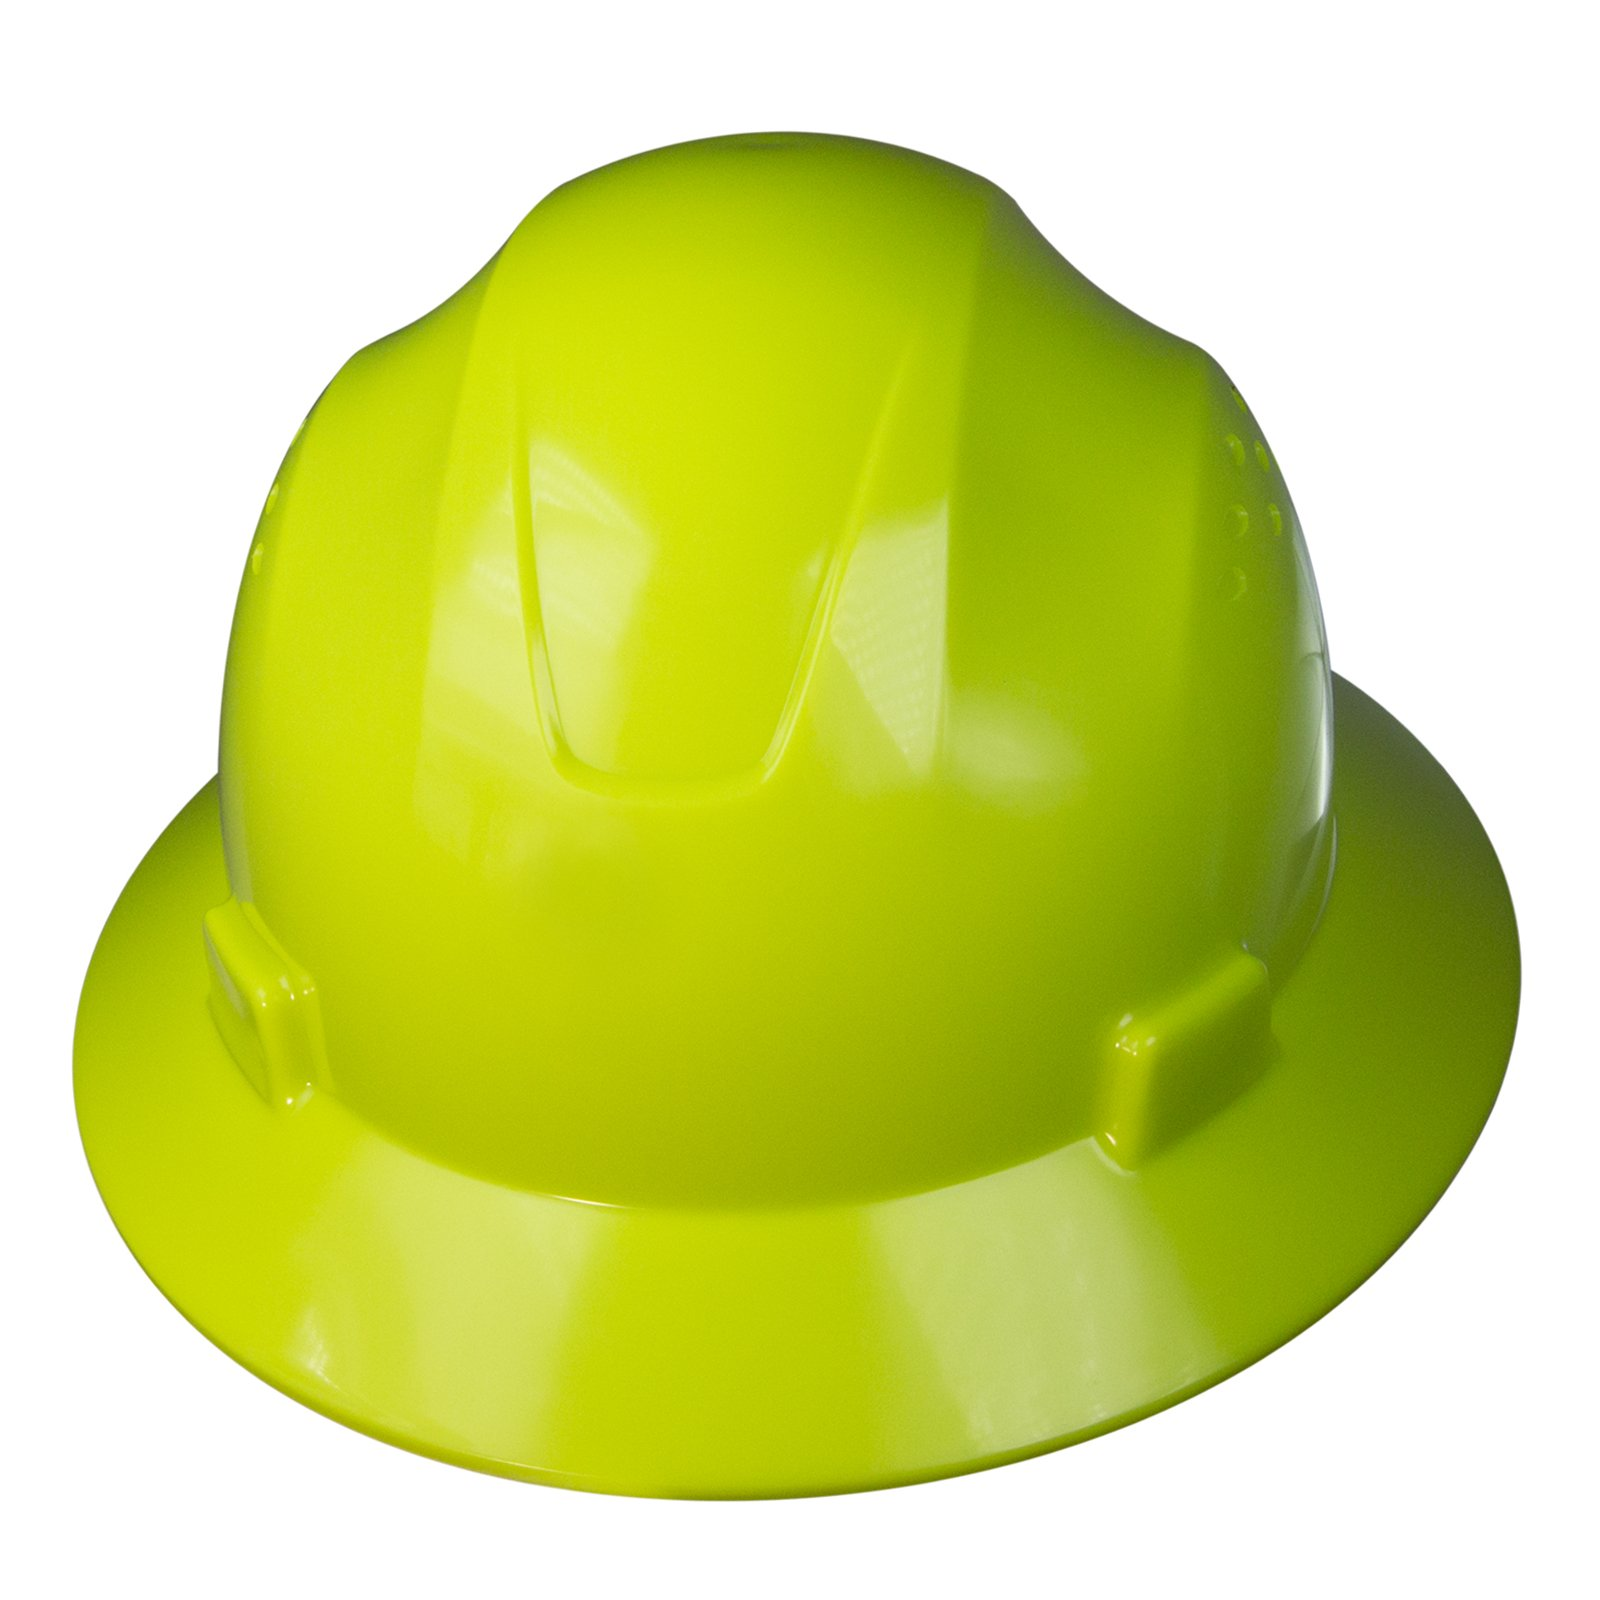 PPE By JORESTECH - HDPE Full Brim Style Hard Hat Helmet w/Adjustable Ratchet Suspension For Work, Home, and General Headwear Protection ANSI Z89.1-14 Compliant (Lime (Hi Vis))